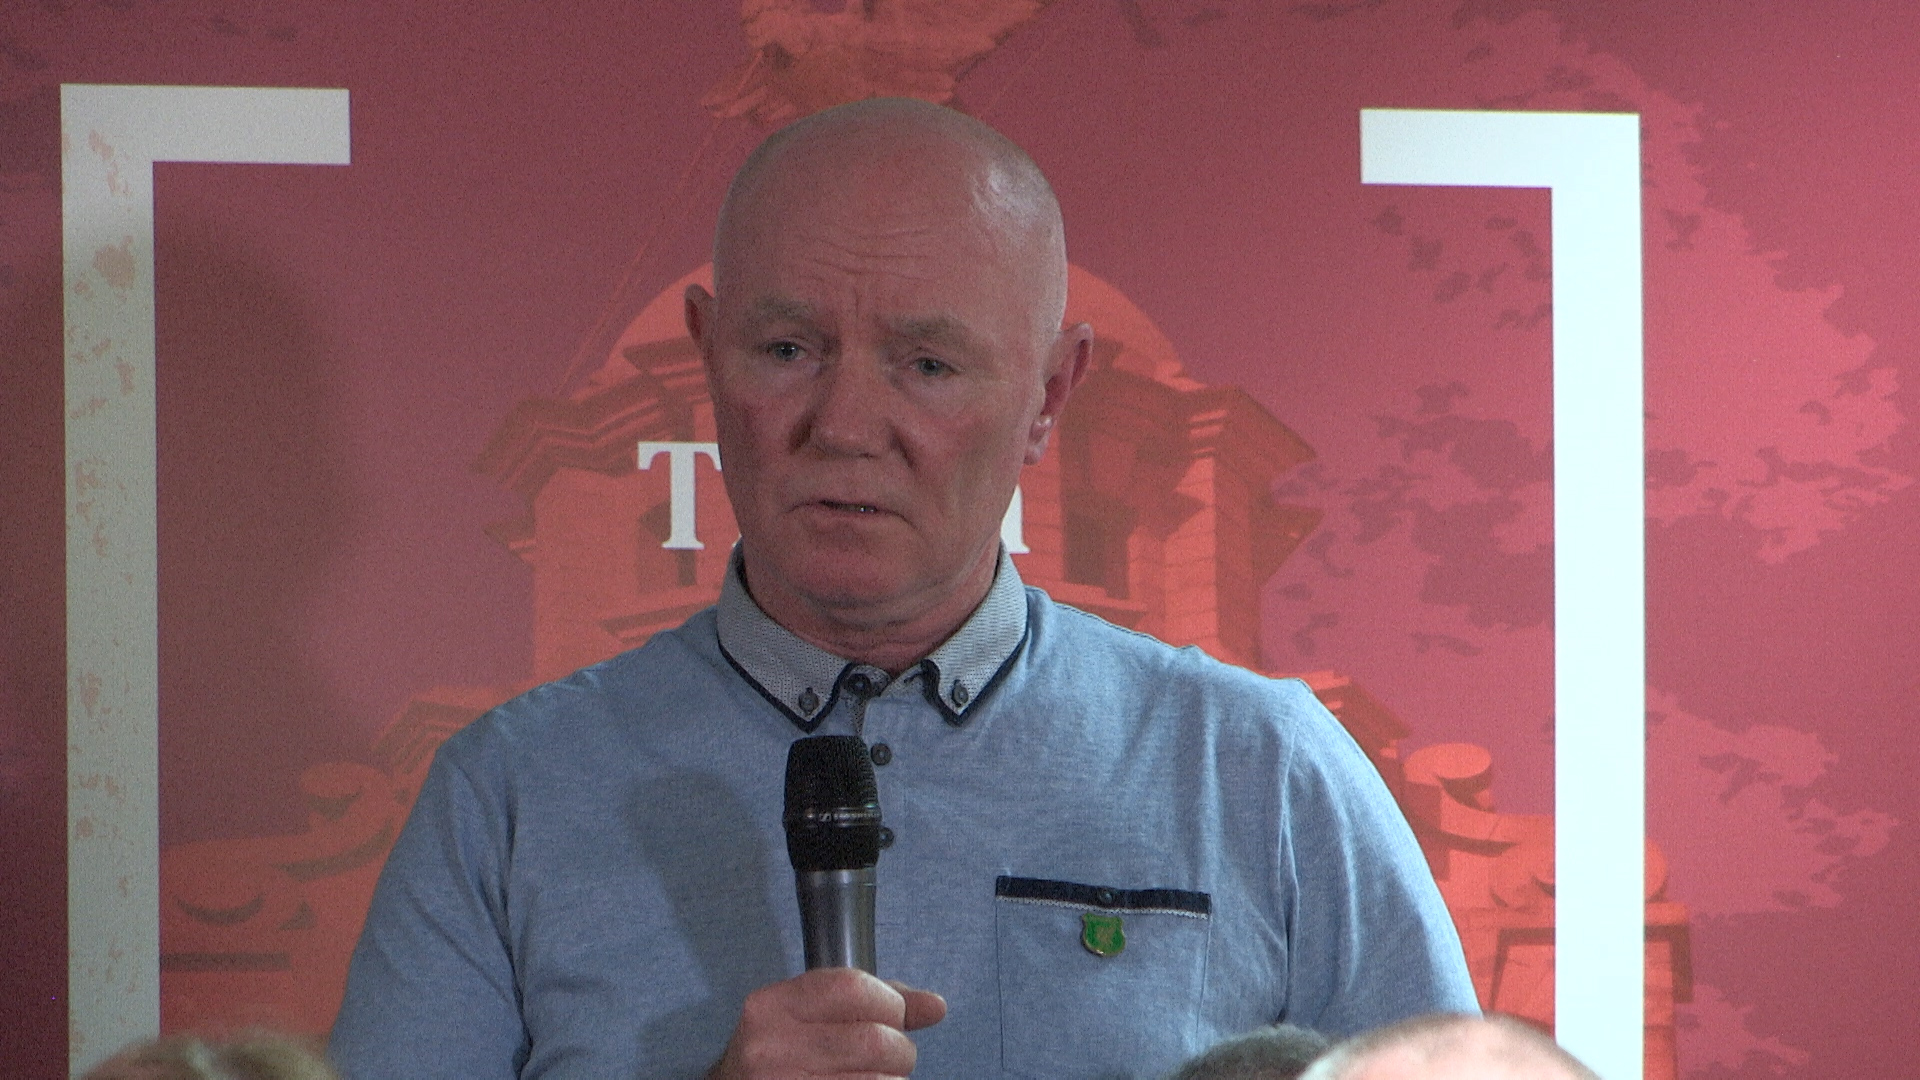 Steve, brother of Michael Kelly, at last week's press conference